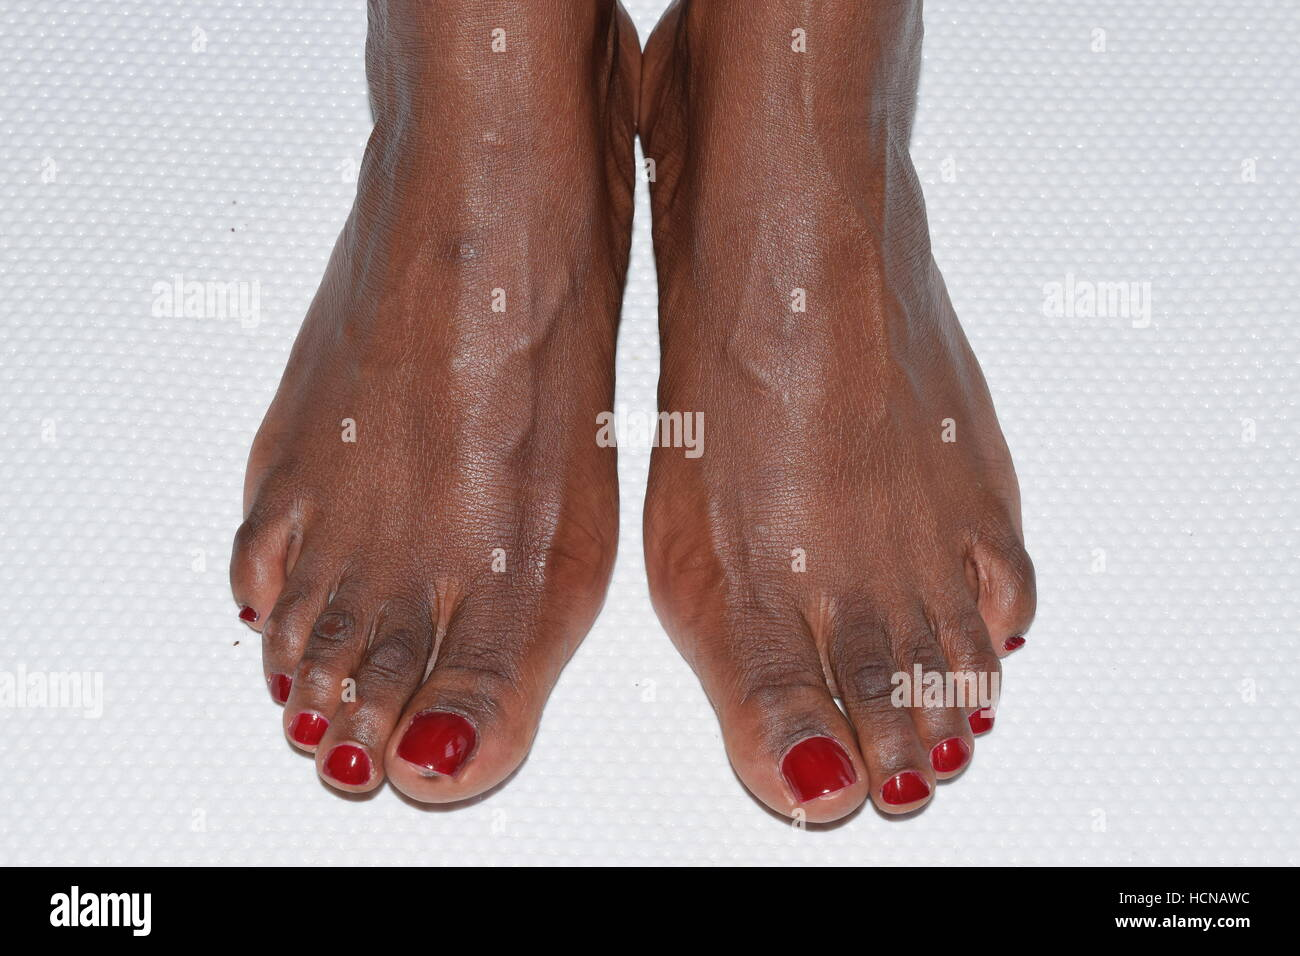 Beautiful female feet pics